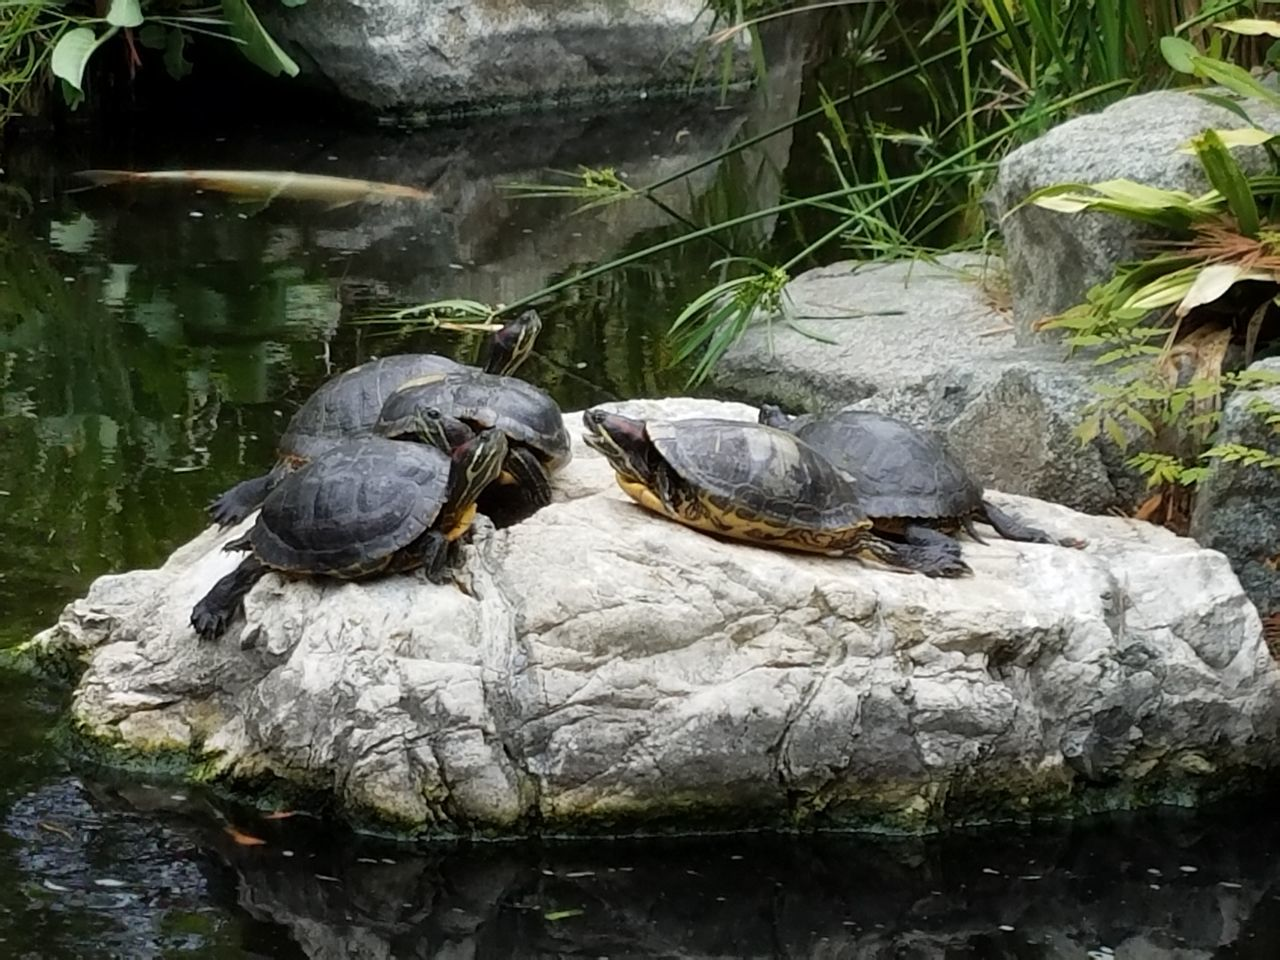 Natural Light No Edit Tortoise Turtles Animal Themes Fine Art Photgraphy Check This Out Light And Shadow Relaxation Enjoying The Moment High Angle View Simplicity Still Life Photography Turtles In A Pond Rock Turtles On A Rock Buddies Pals Together Hanging Out